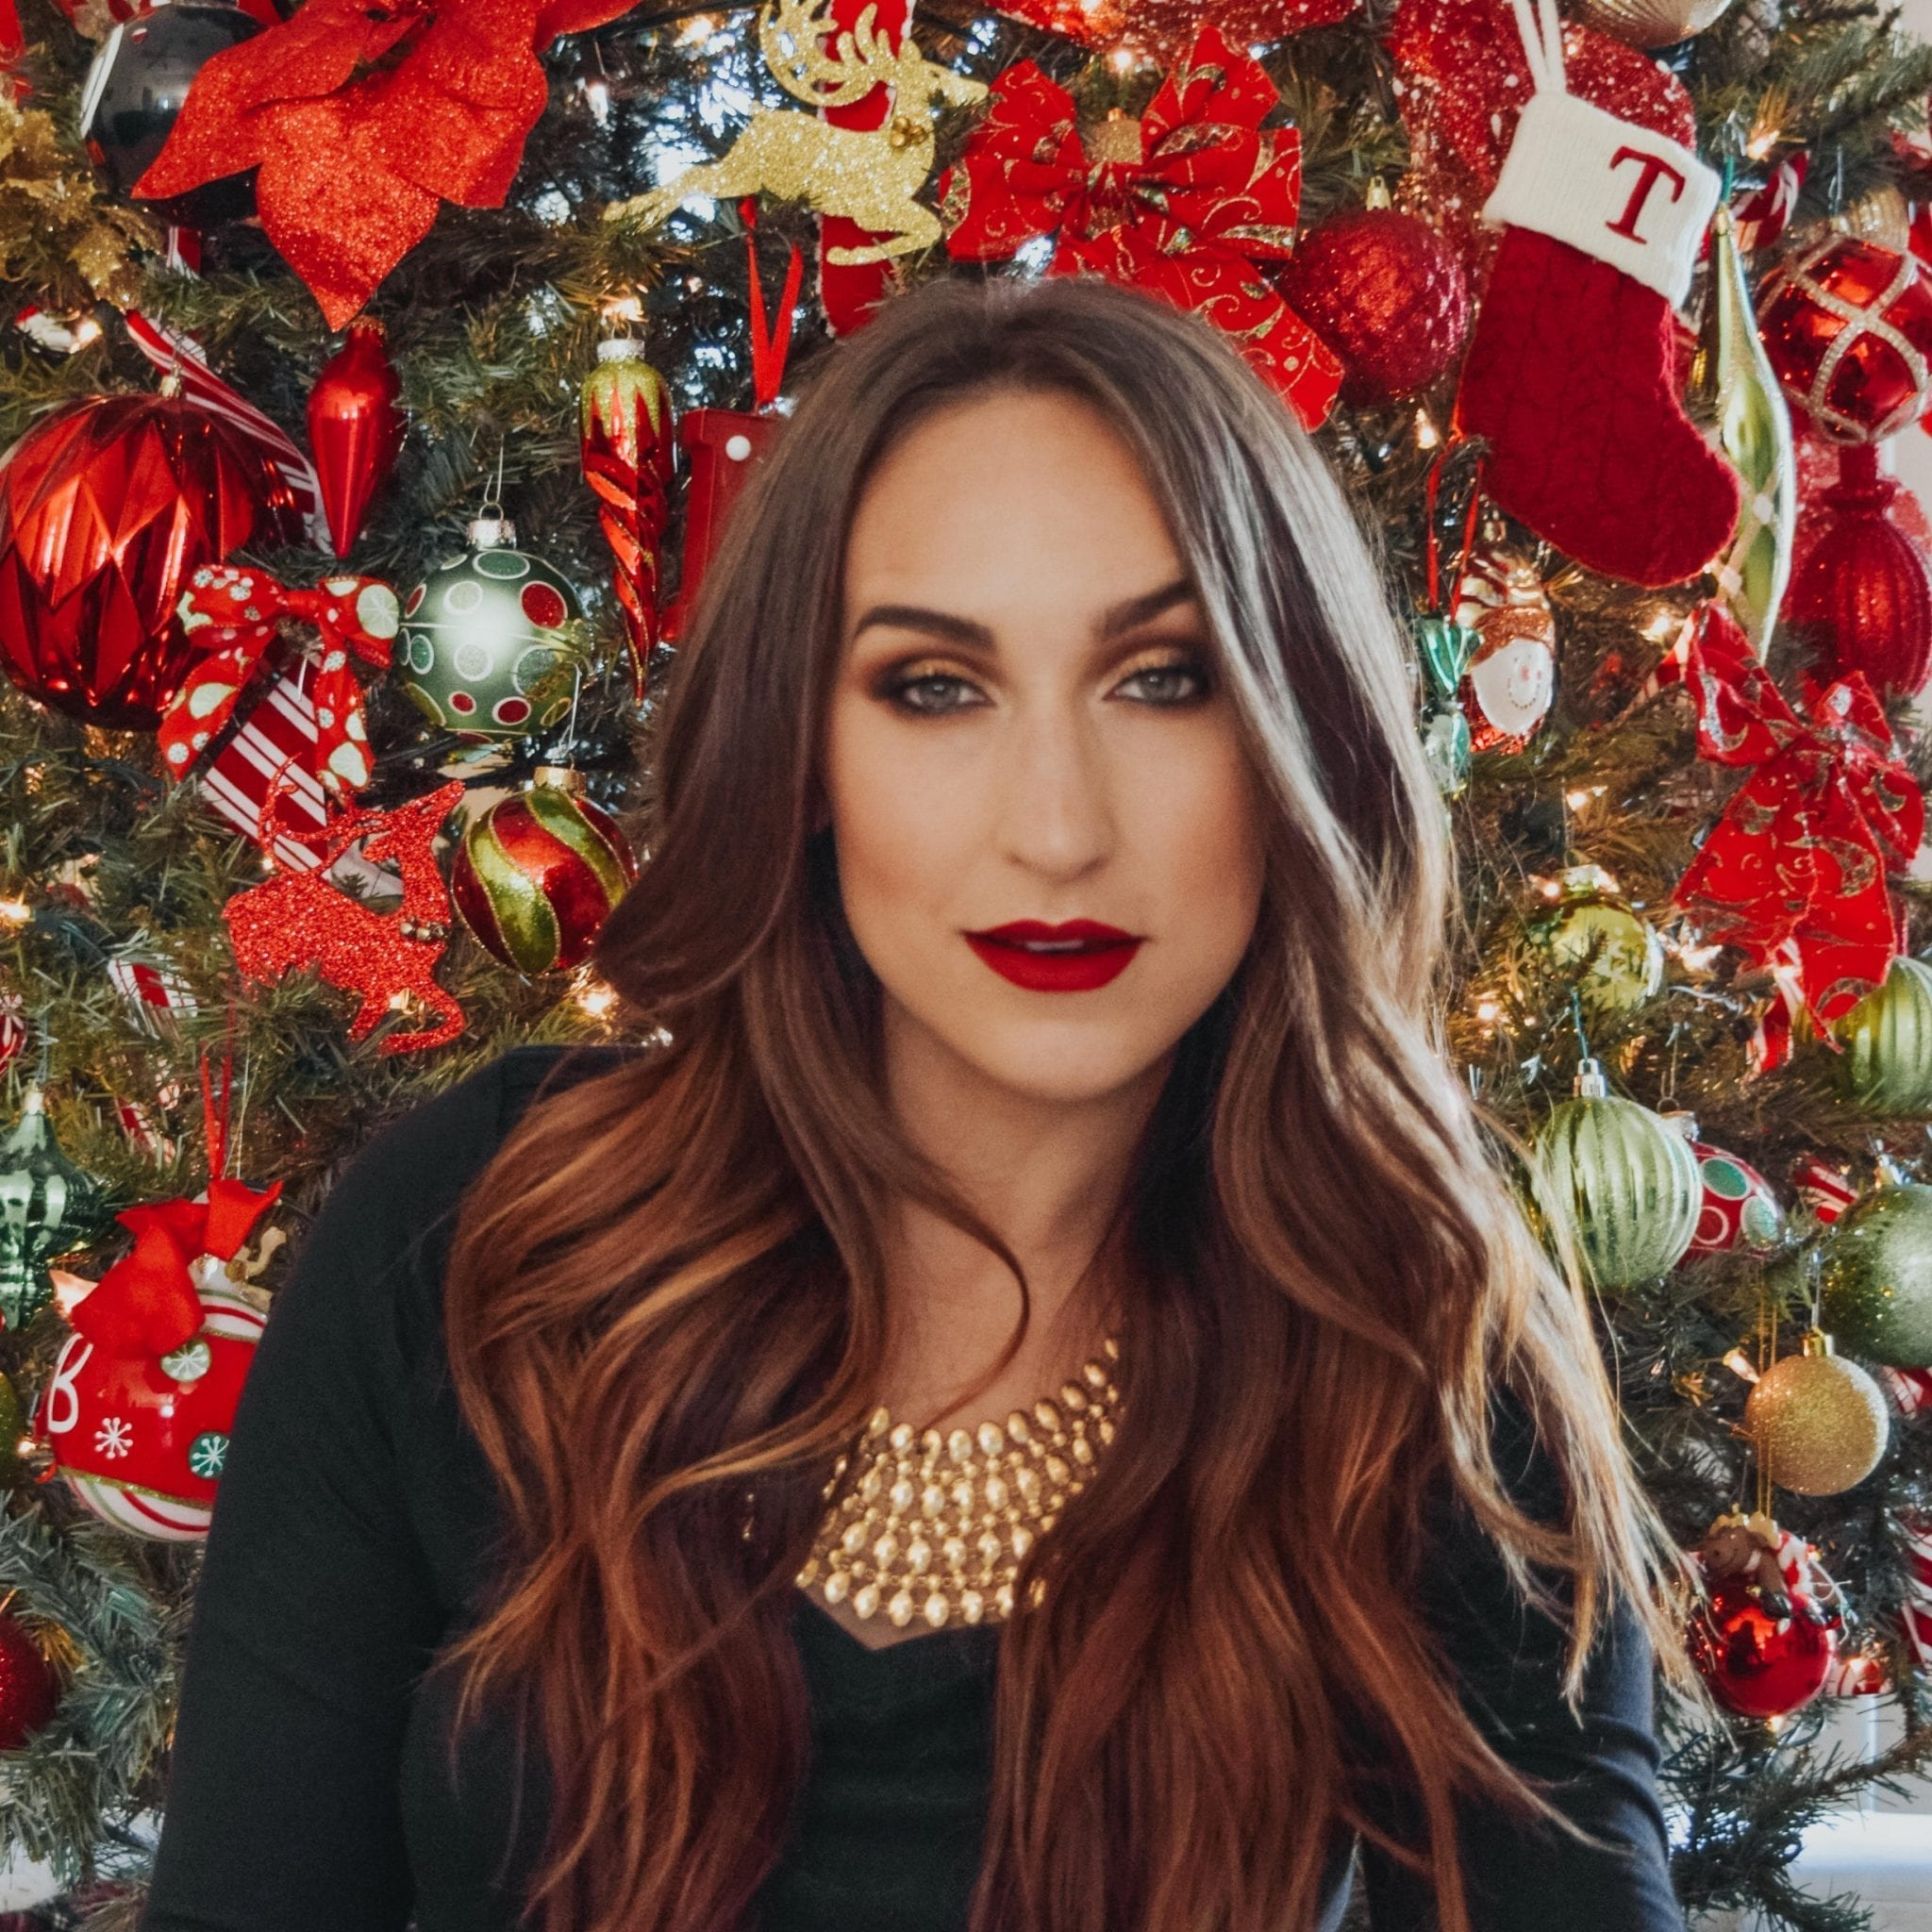 Red Lipstick Holiday Glam